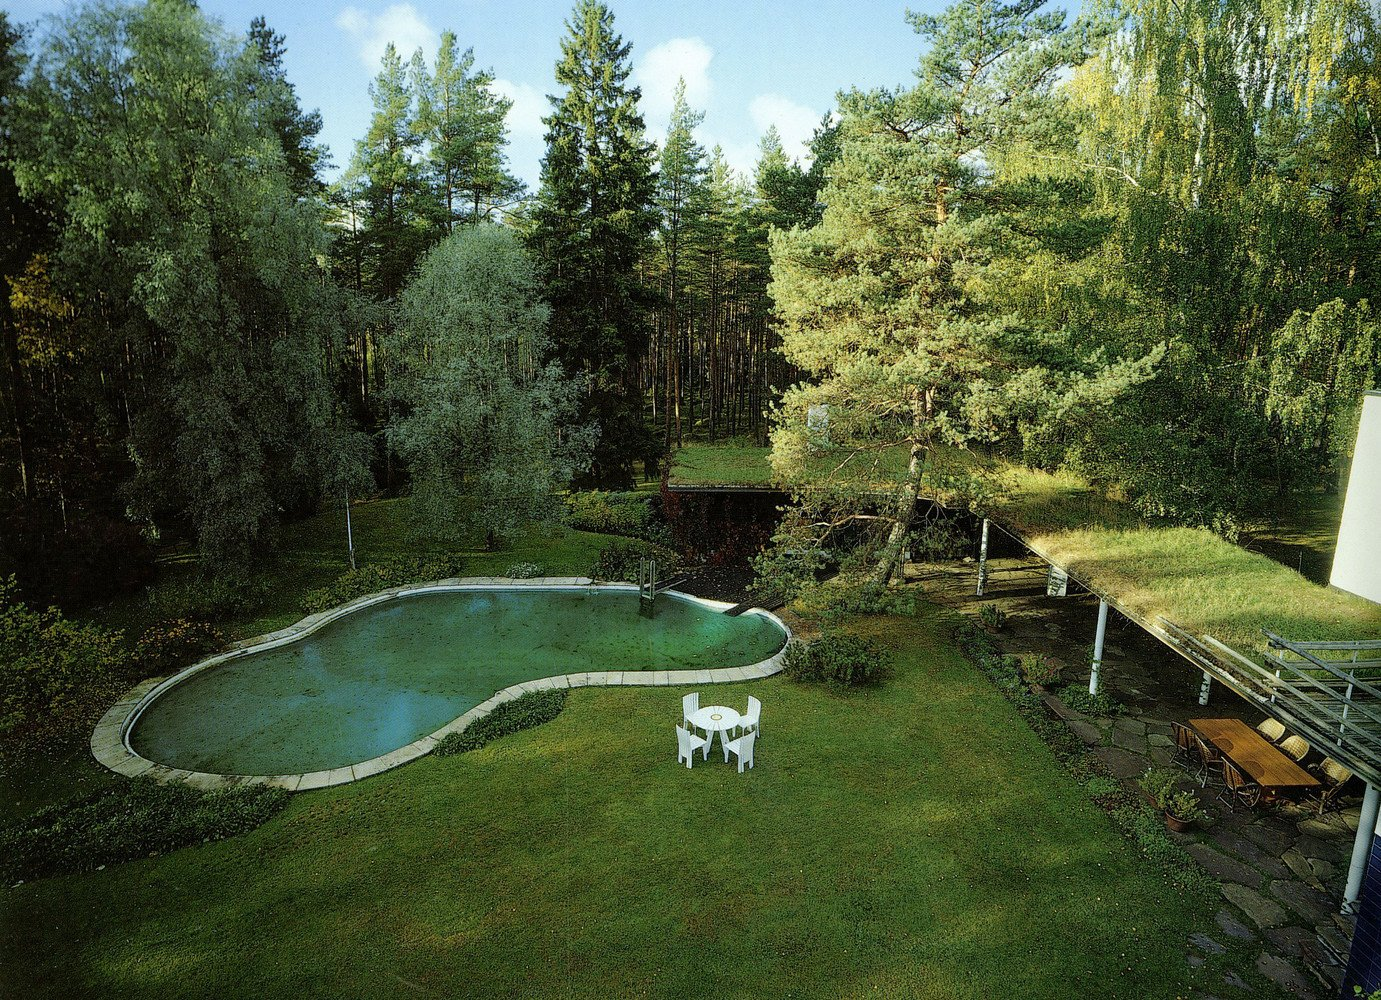 The kidney-shaped pool at Villa Mairea in Noormarkku, Finland